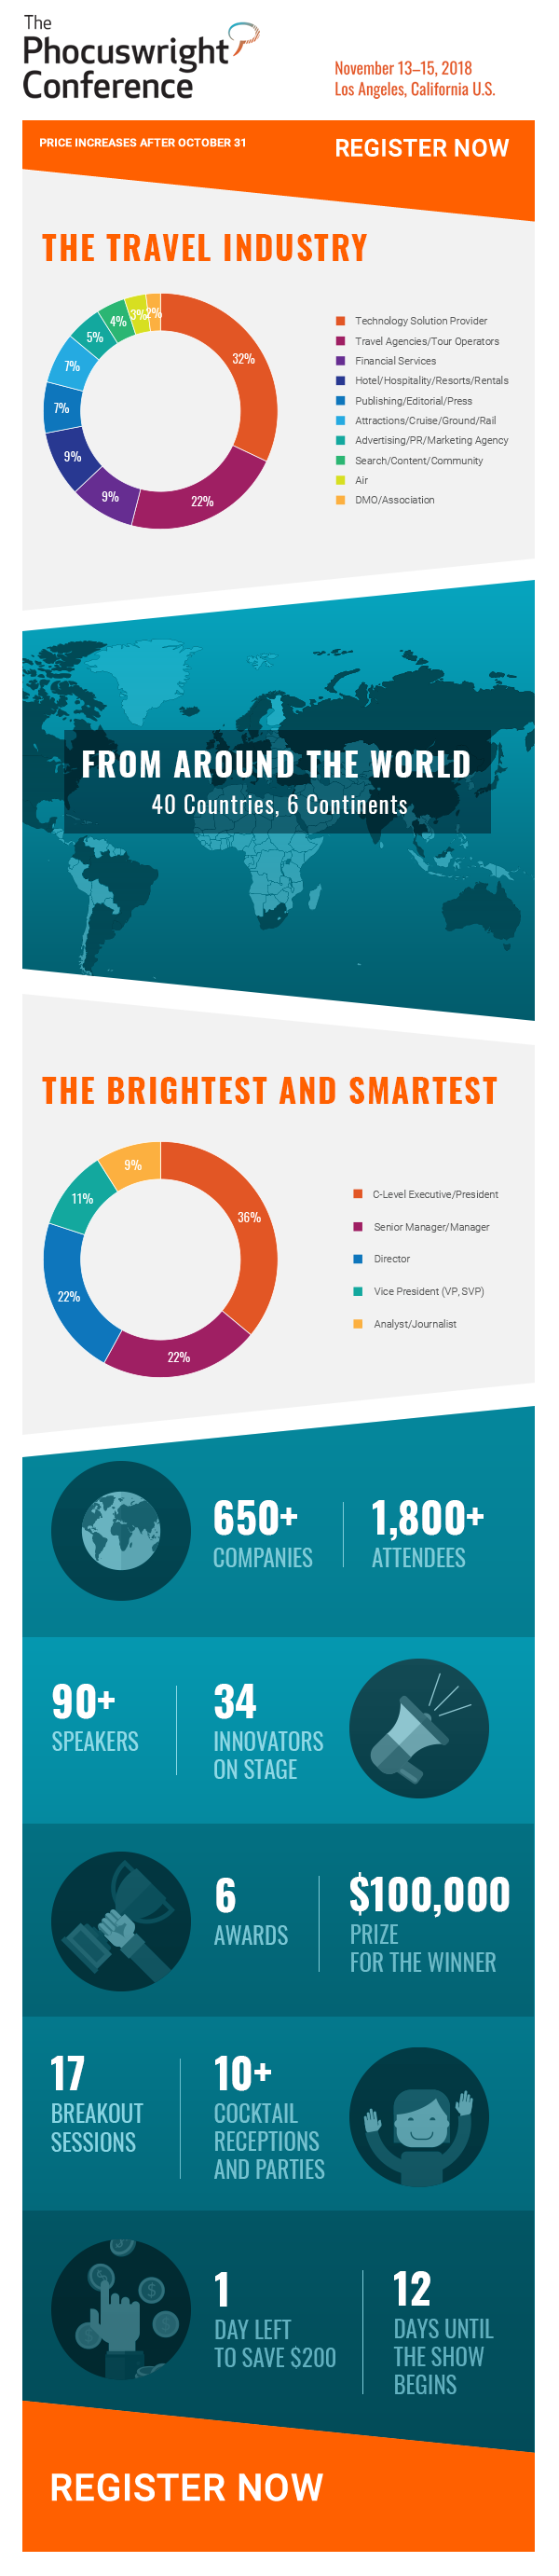 The Phocuswright Conference by the numbers